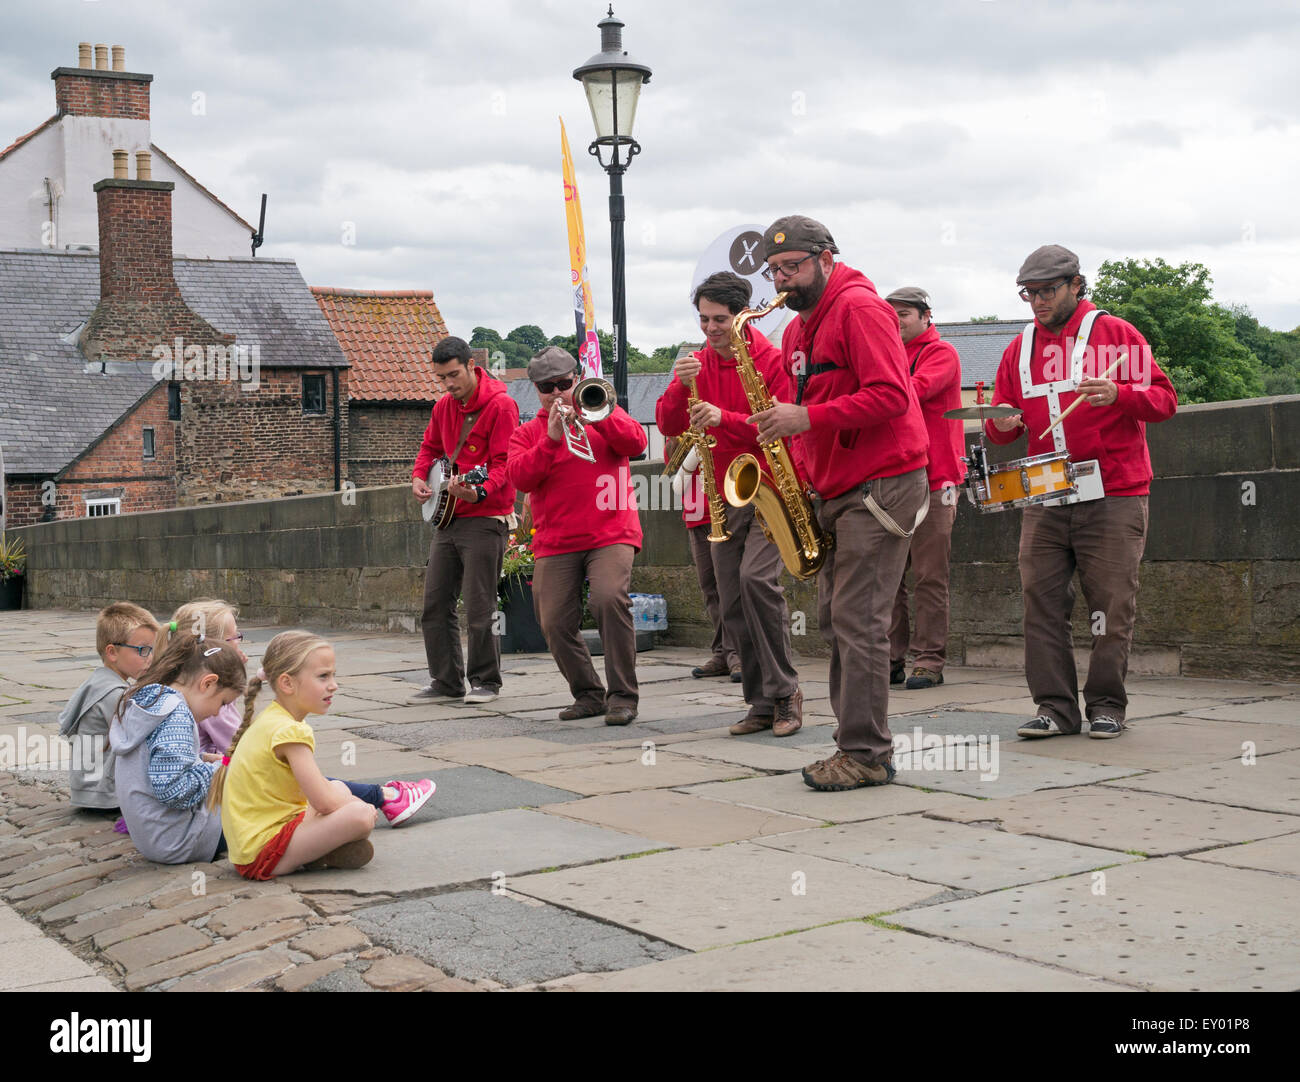 durham-city-uk-18th-july-2015-portuguese